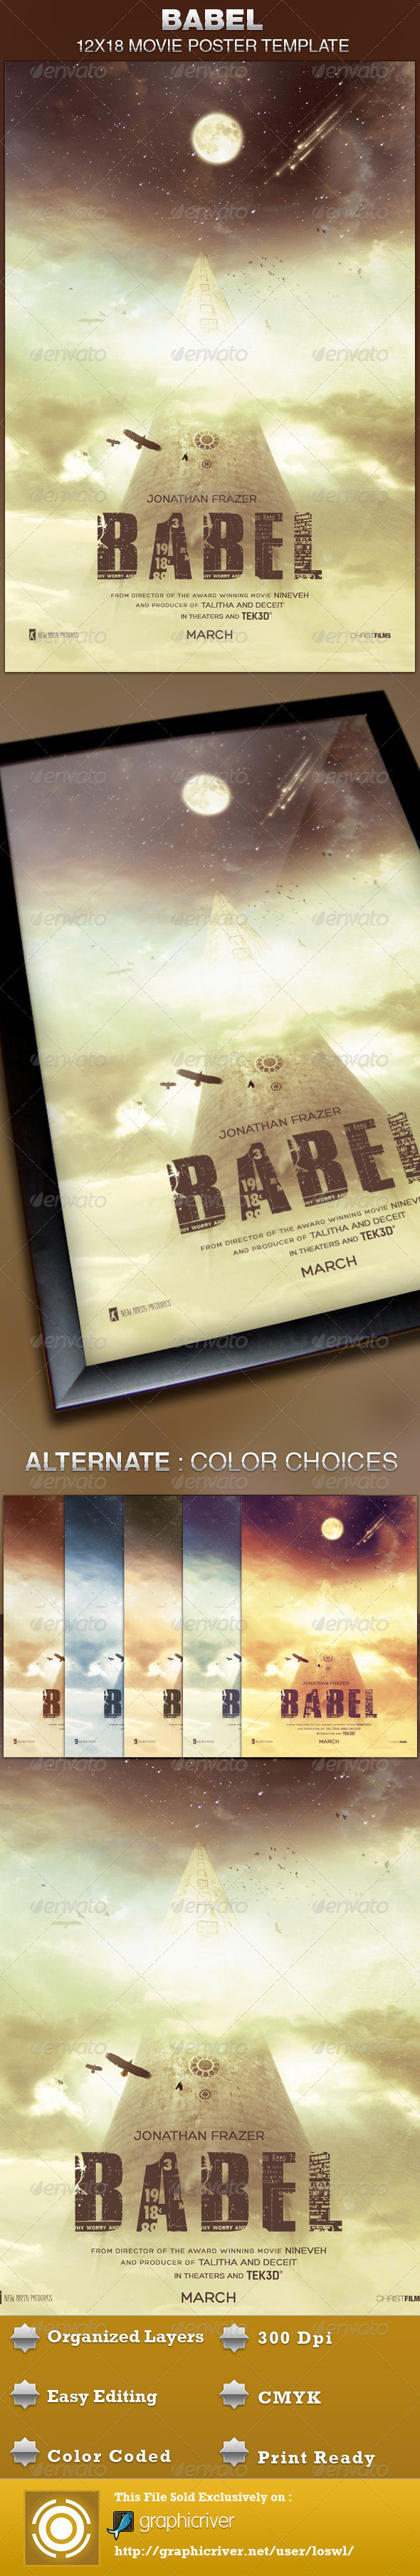 Babel Movie Poster Template - Church Flyers